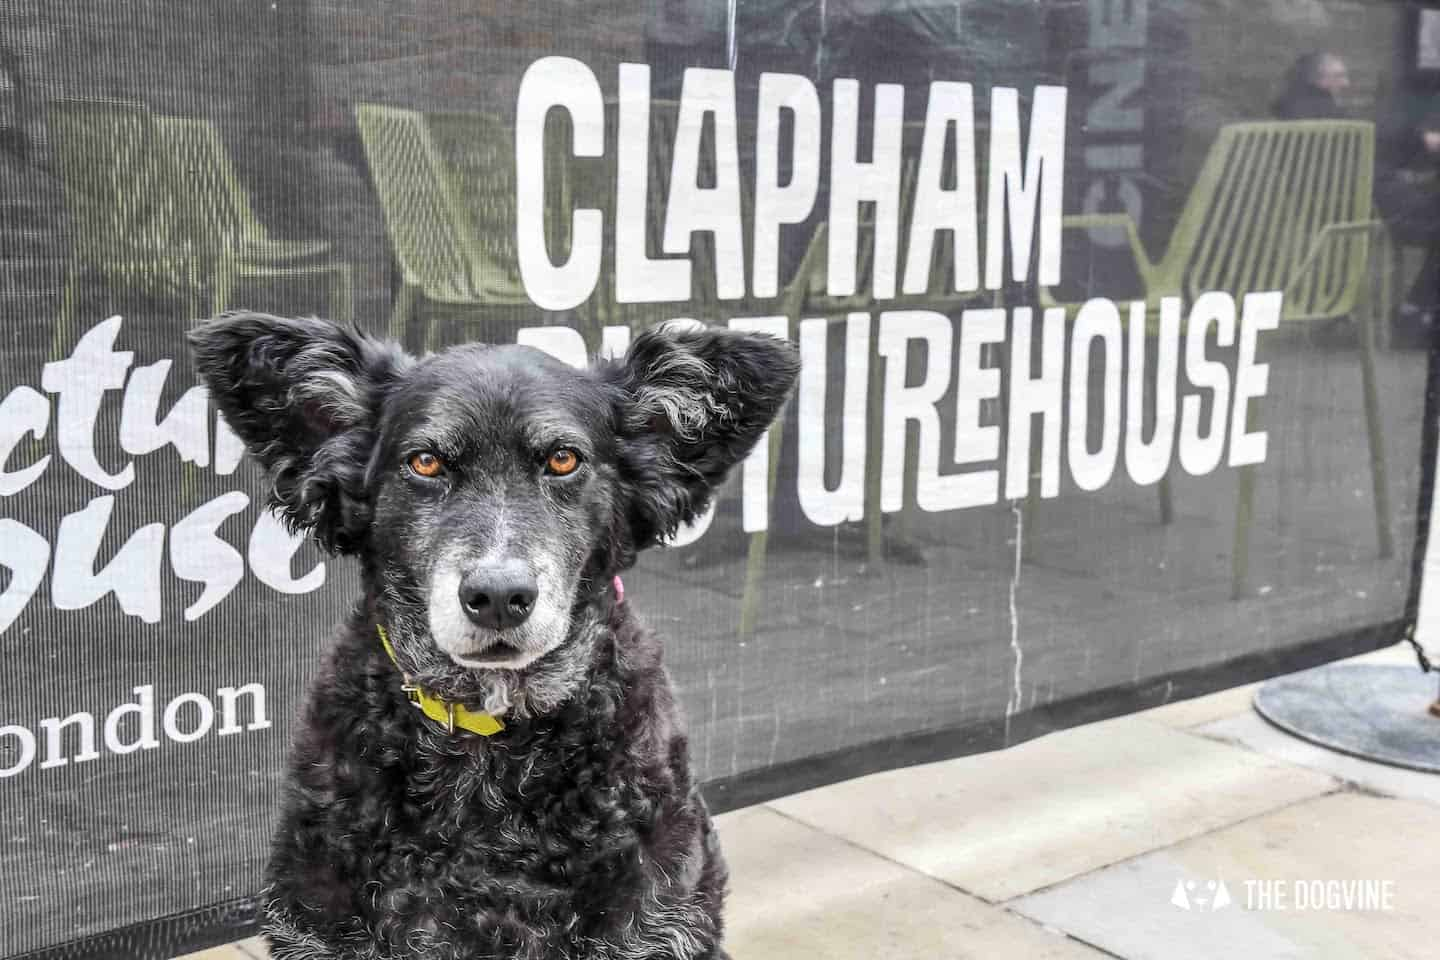 Clapham Picturehouse Dog-Friendly Cinema Christopher Robbin August 2018